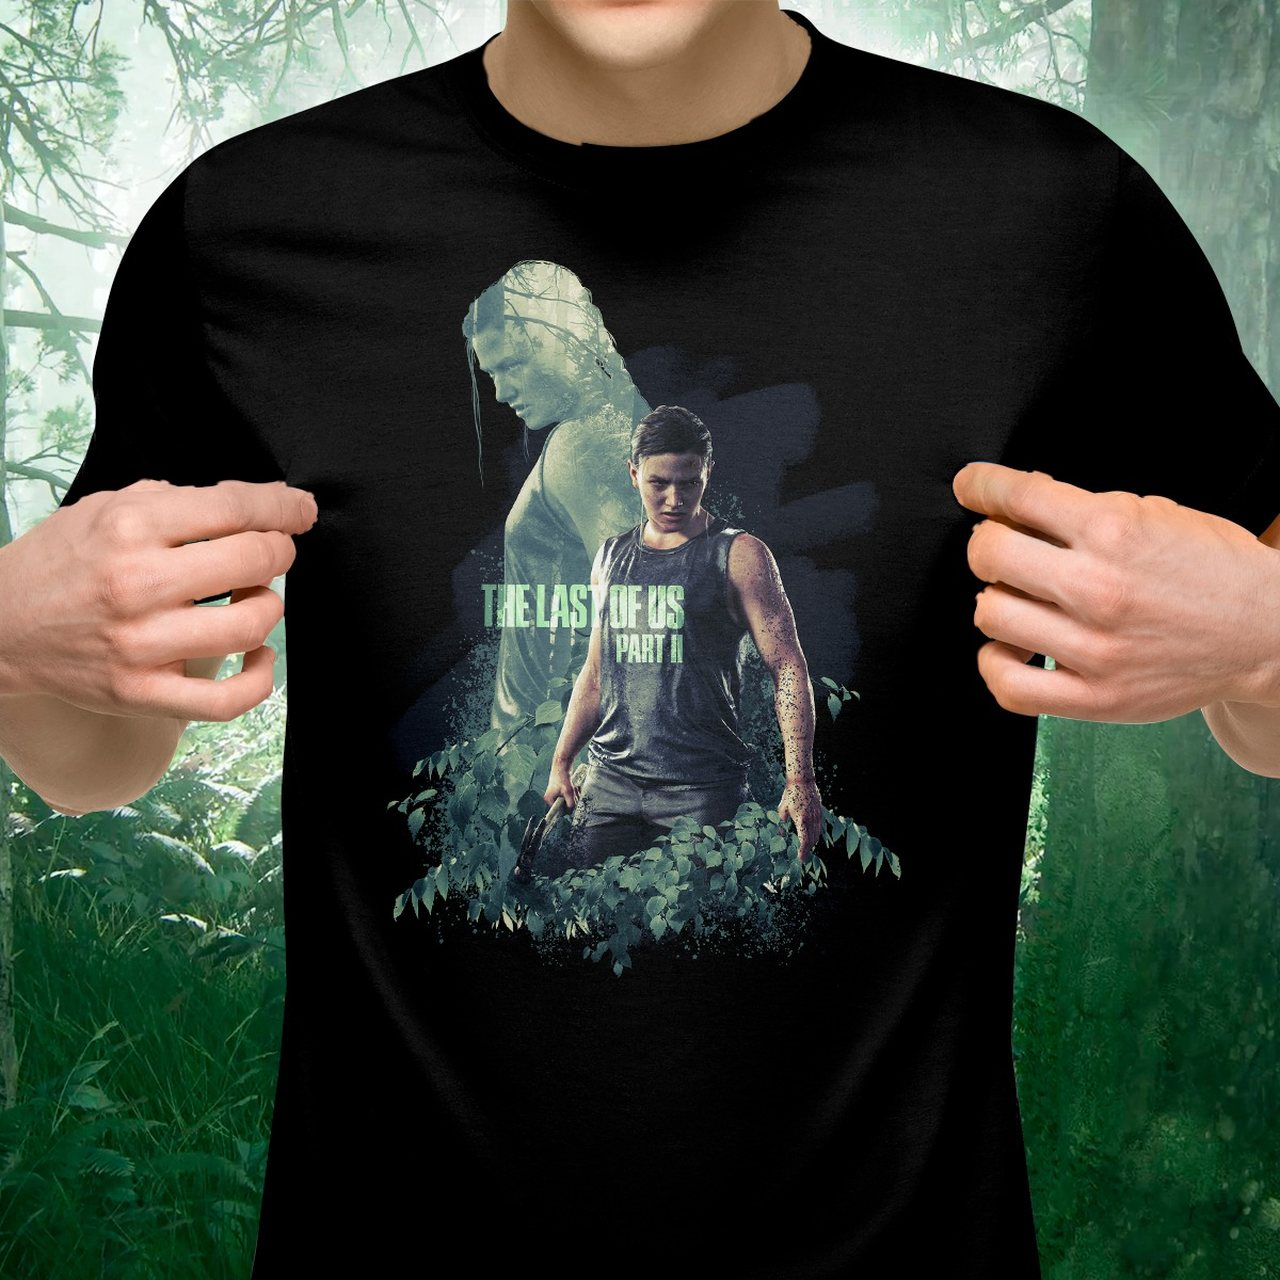 Camiseta: '' The Last of Us Parte II